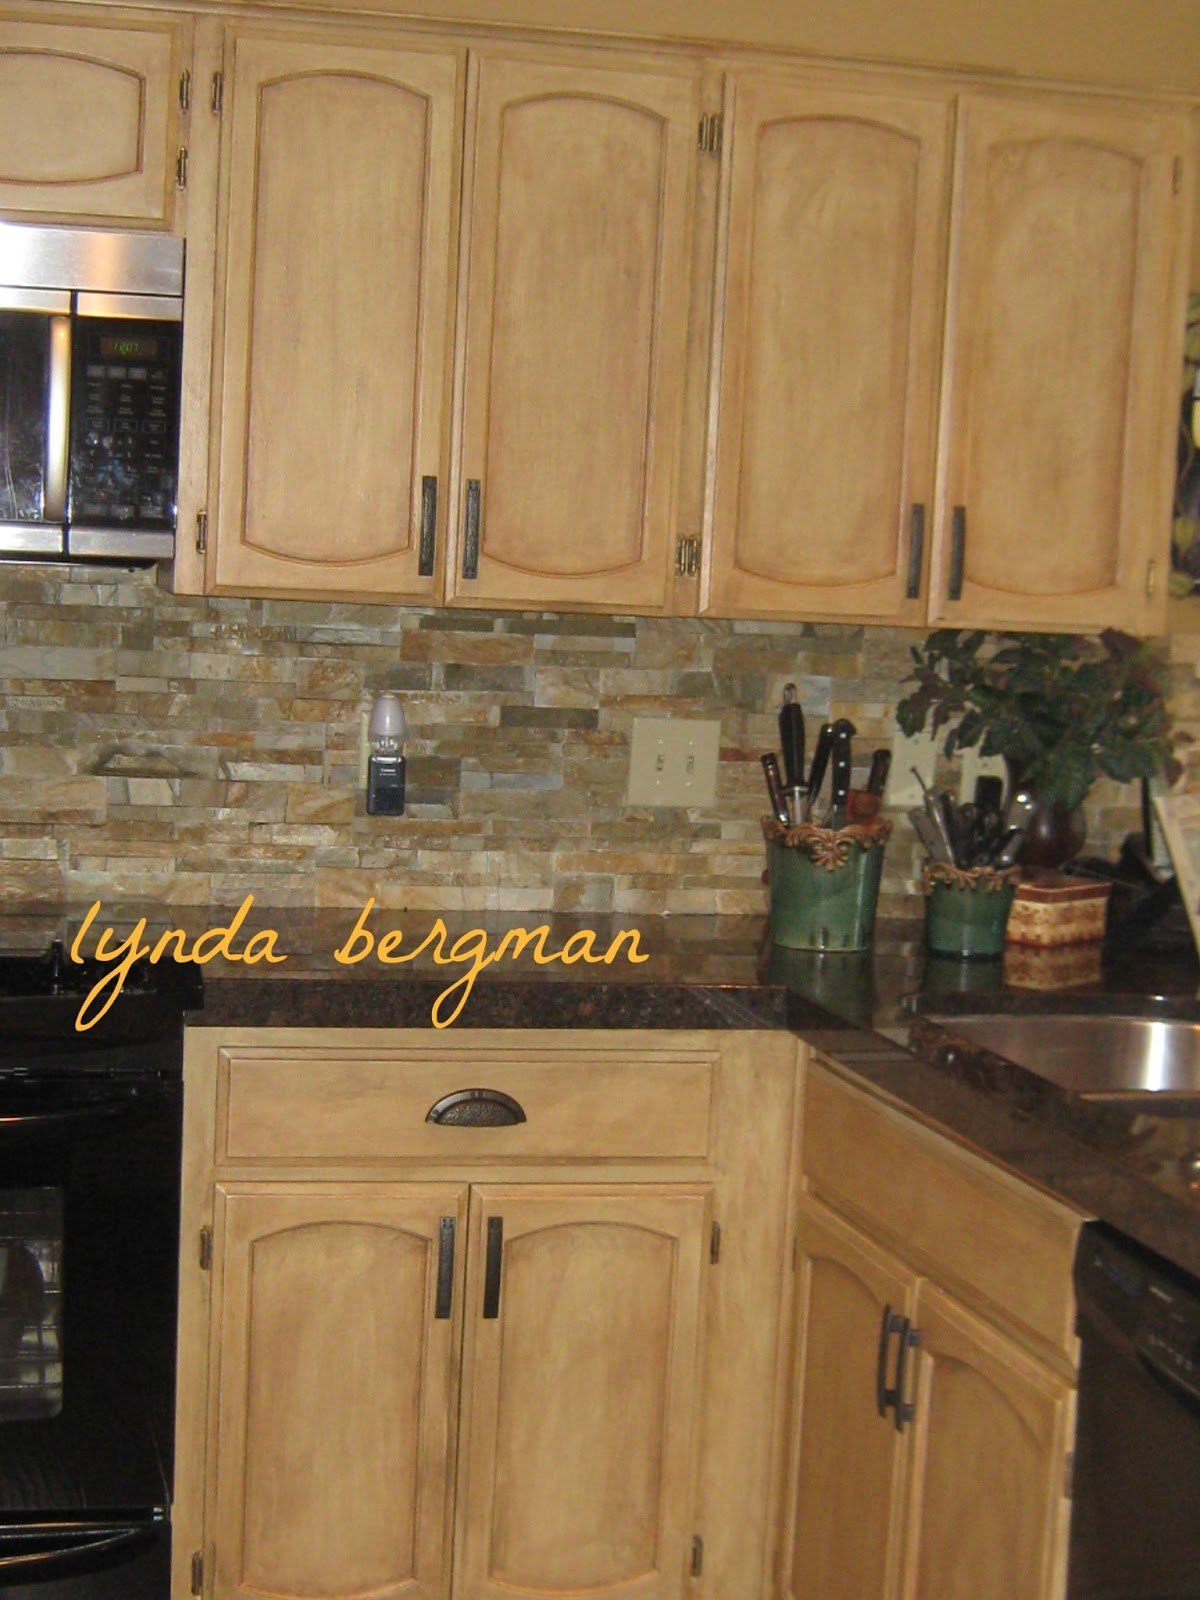 LYNDA BERGMAN DECORATIVE ARTISAN: LINDA'S NEW KITCHEN ...